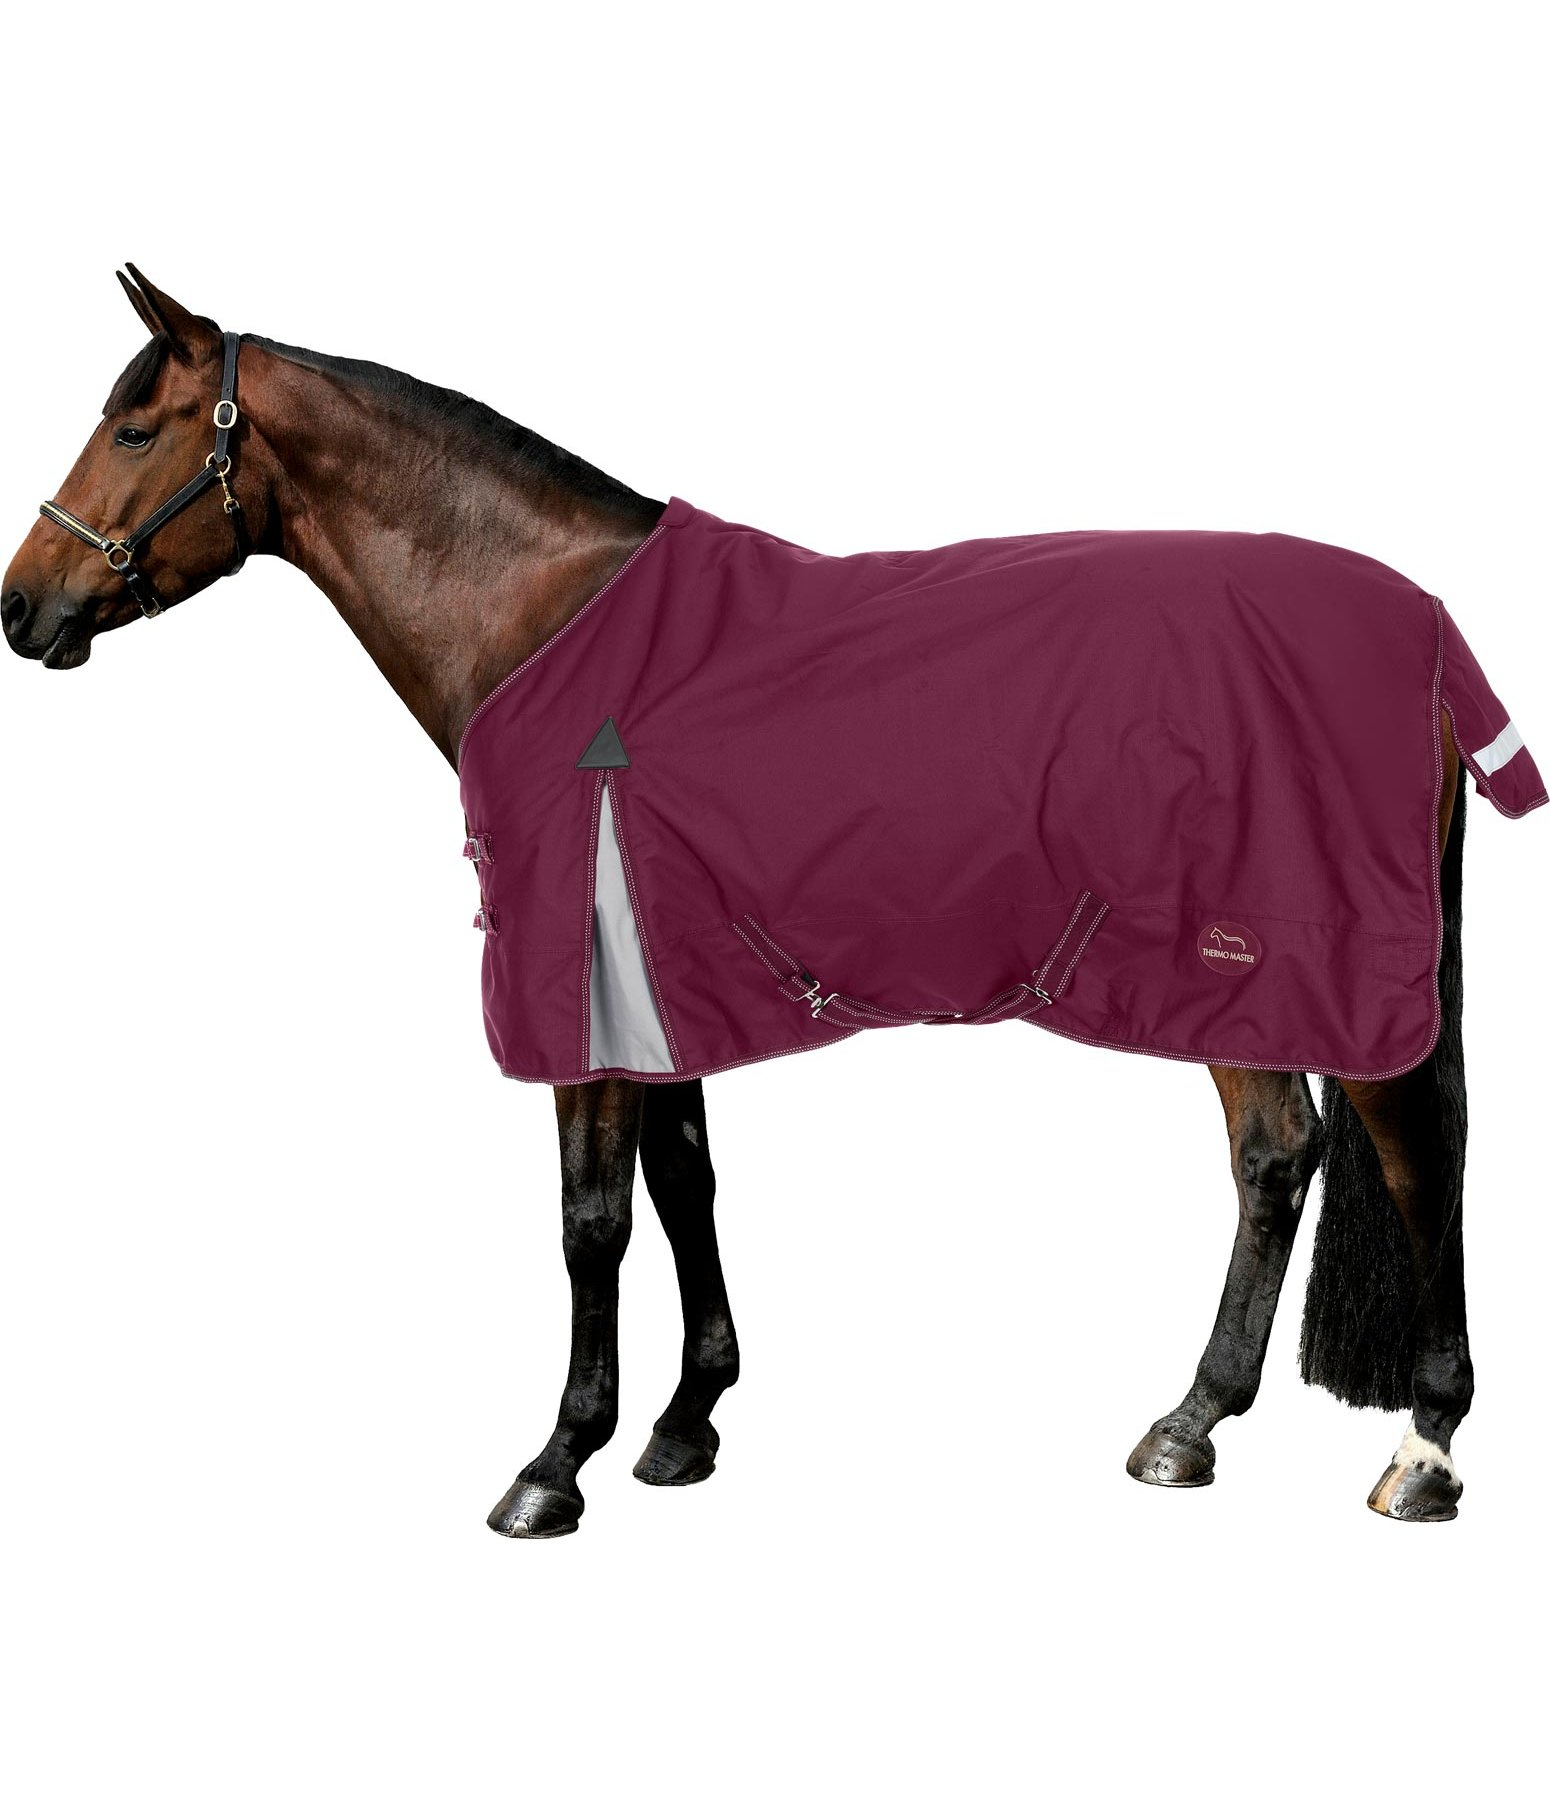 Winter Turnout Rug Candia, 100g